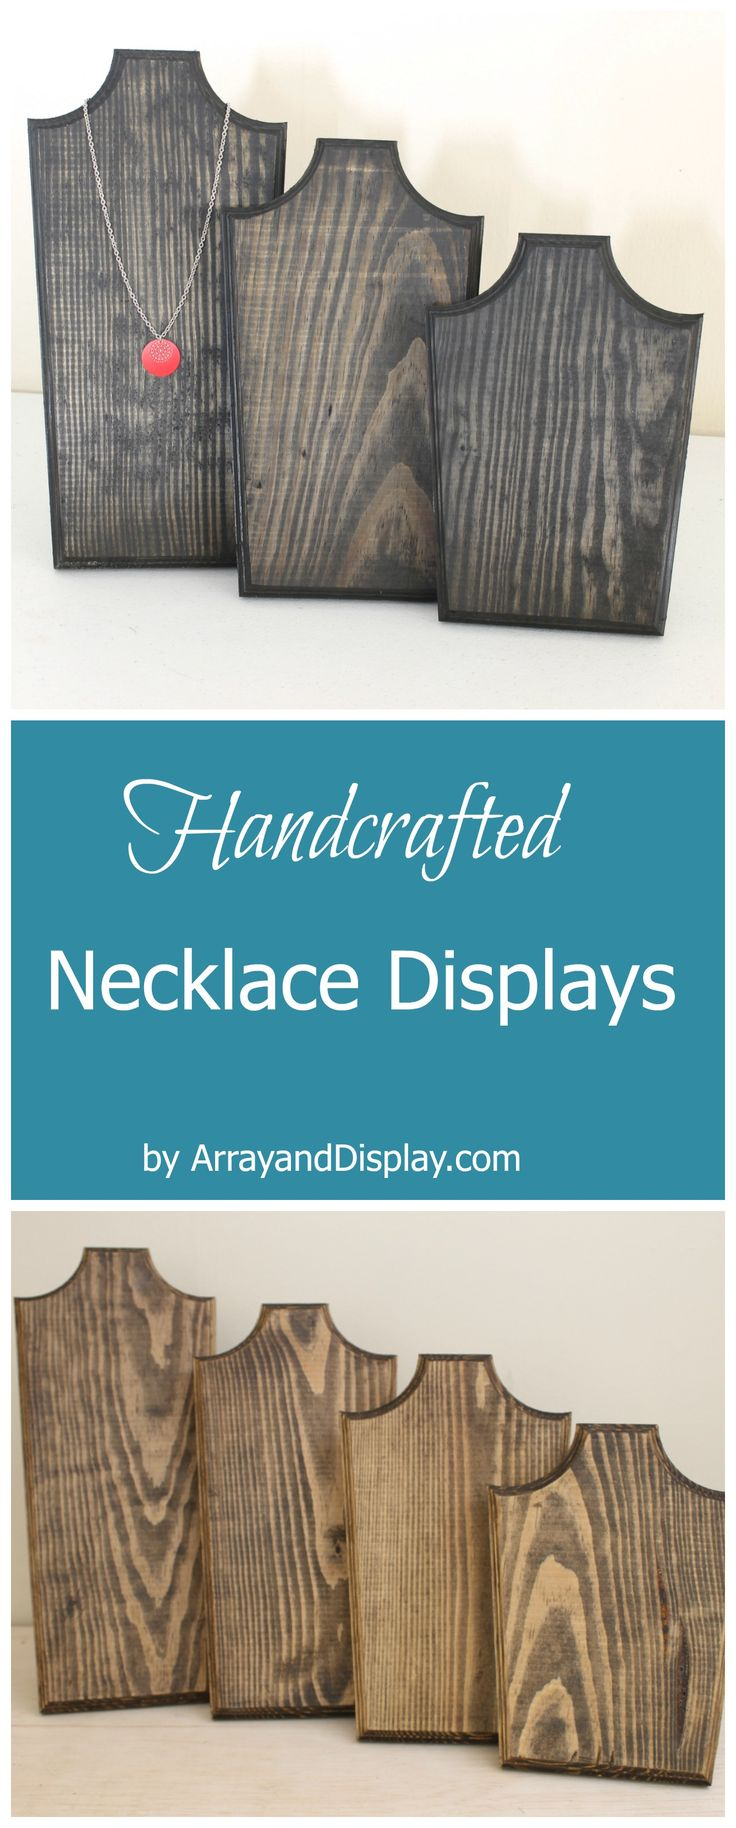 Handcrafted jewelry displays made of locally sourced new and reclaimed wood. Handcrafted in the USA by ArrayandDisplay.com. Necklace displays, necklace stands, necklace busts, booth displays, boutique displays, craft market displays.